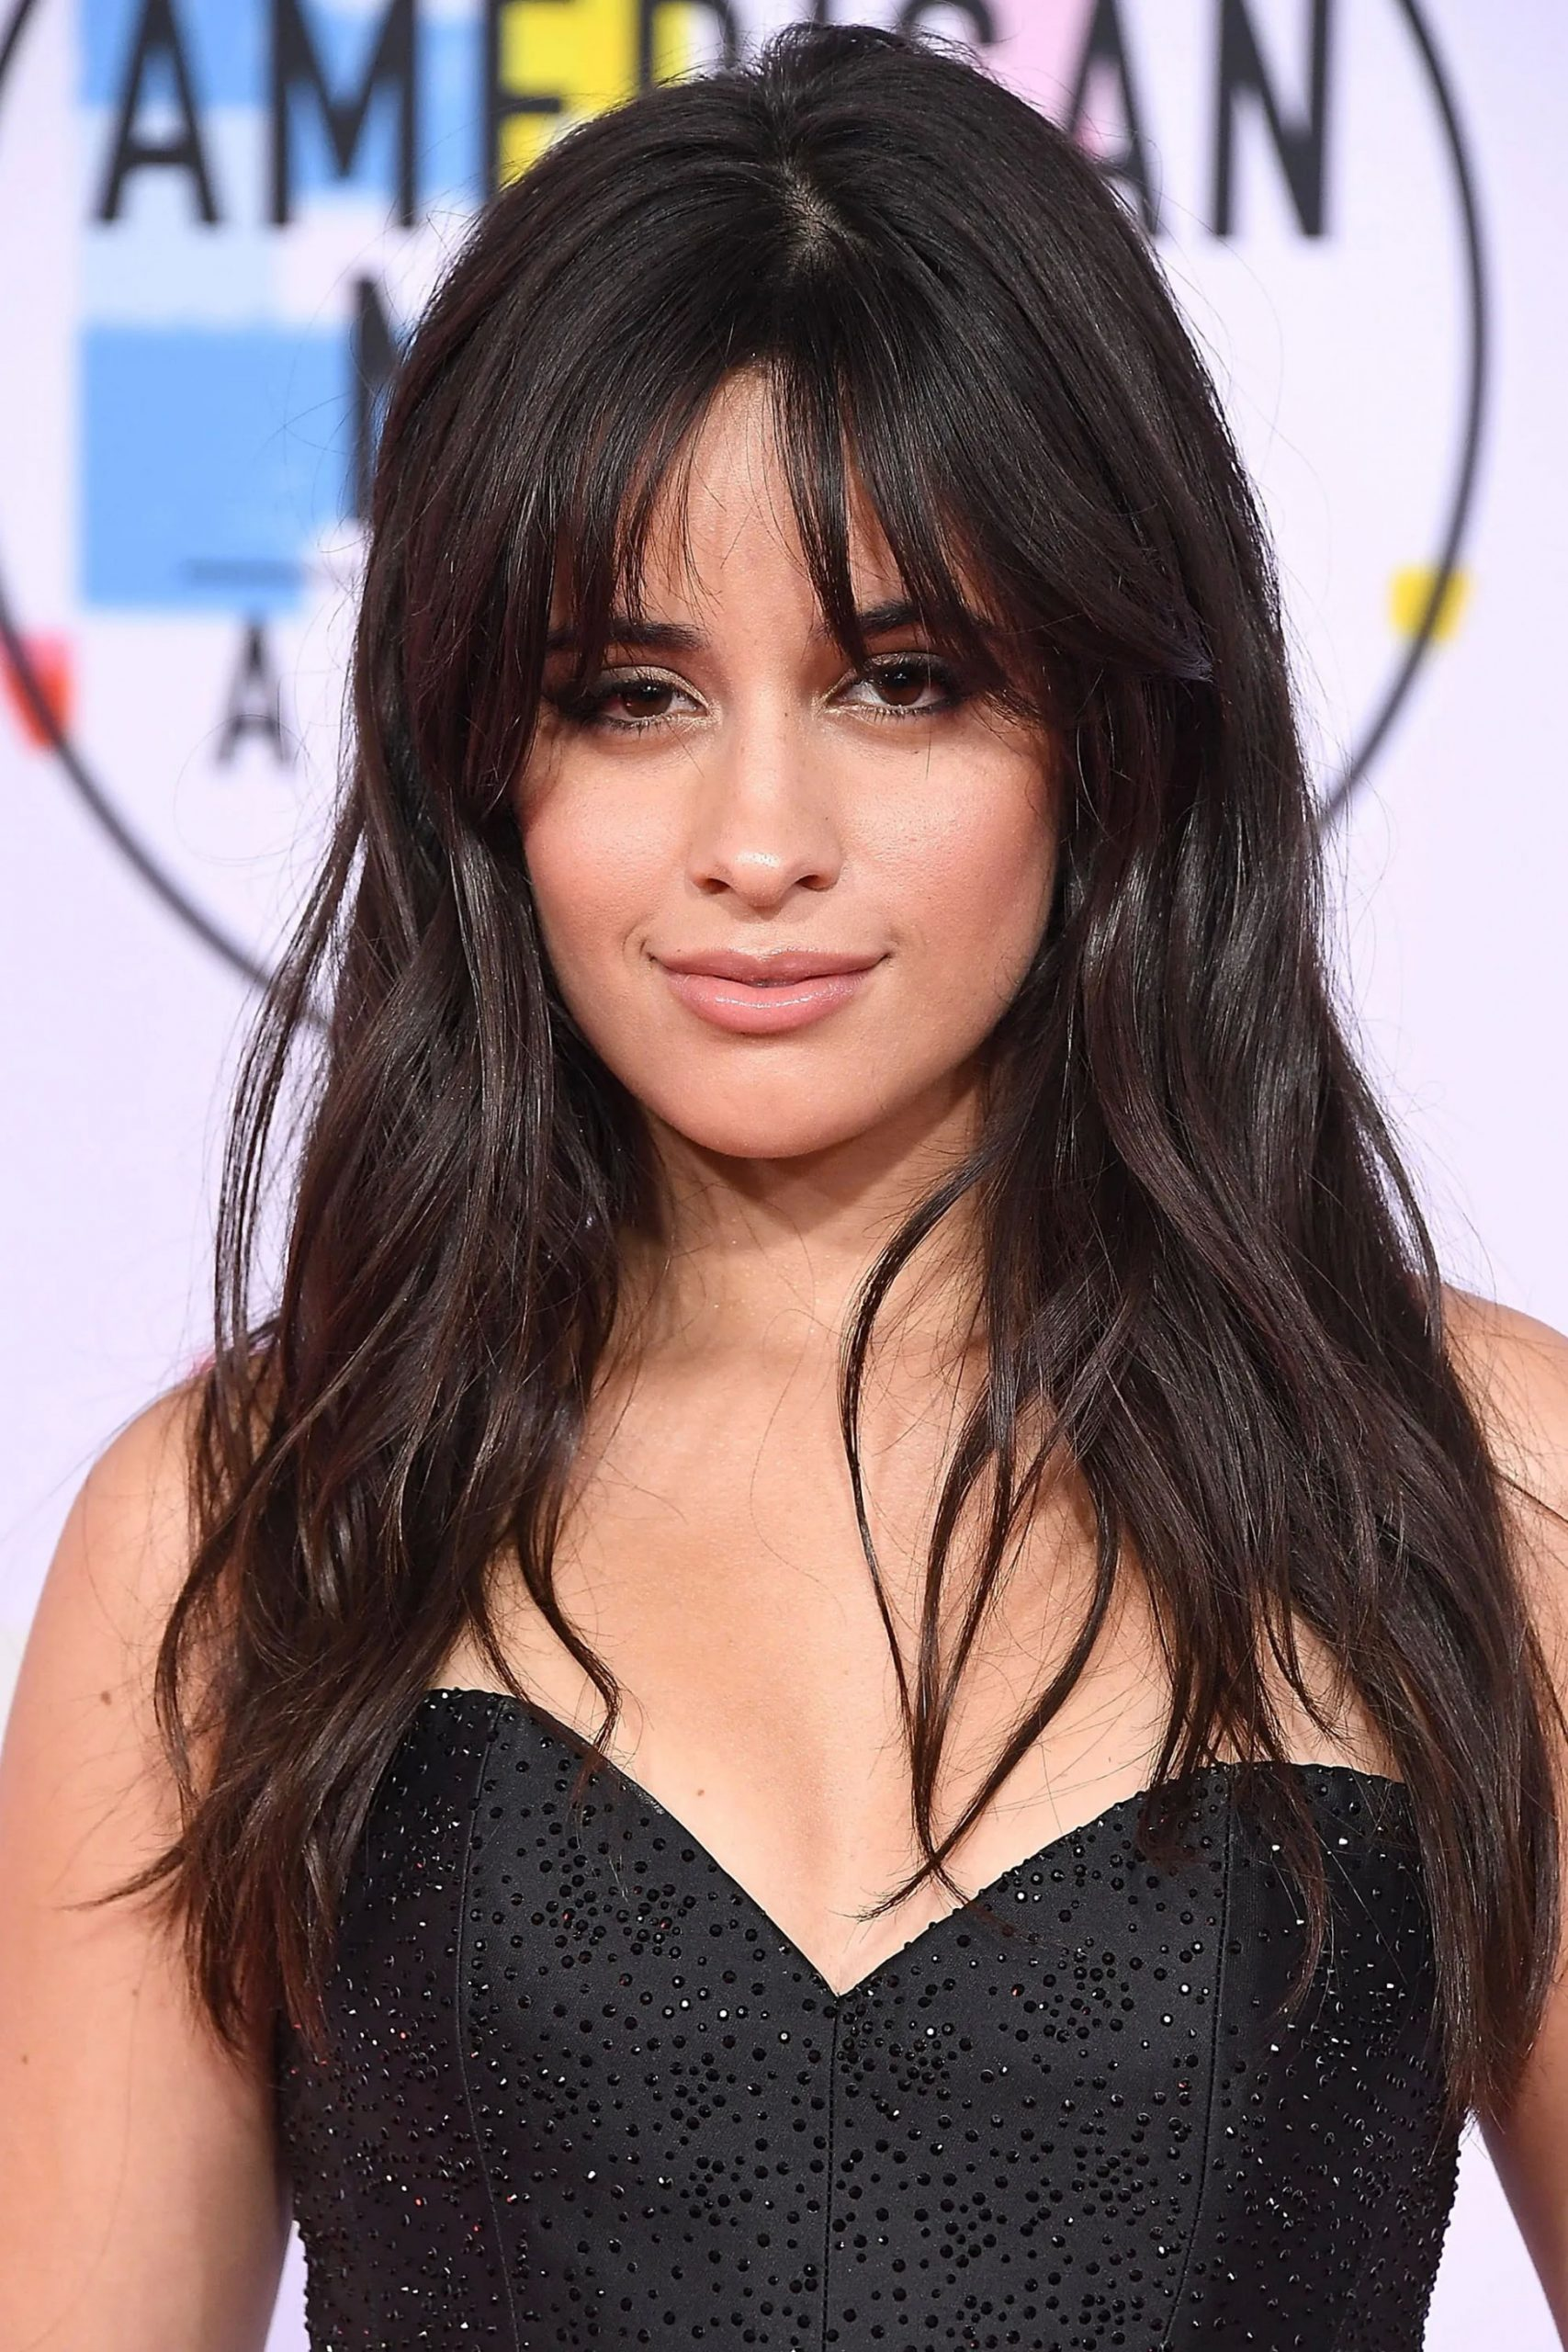 Types Of Bangs Haircut Styles That Are Trendy For 9 Long Front Bangs